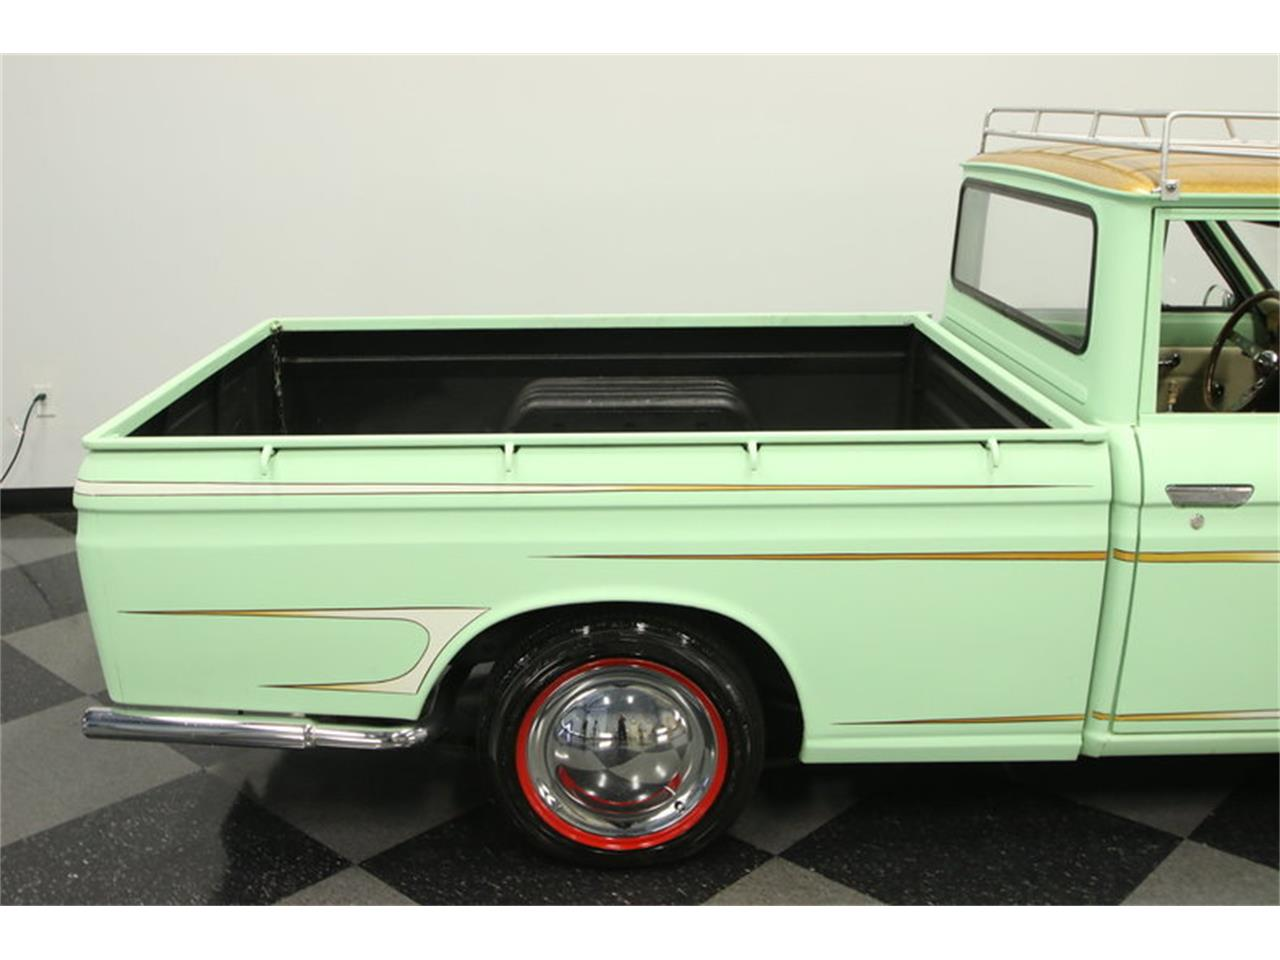 Large Picture of '72 Datsun 1600 520 Pickup located in Lutz Florida - $9,995.00 - MB90